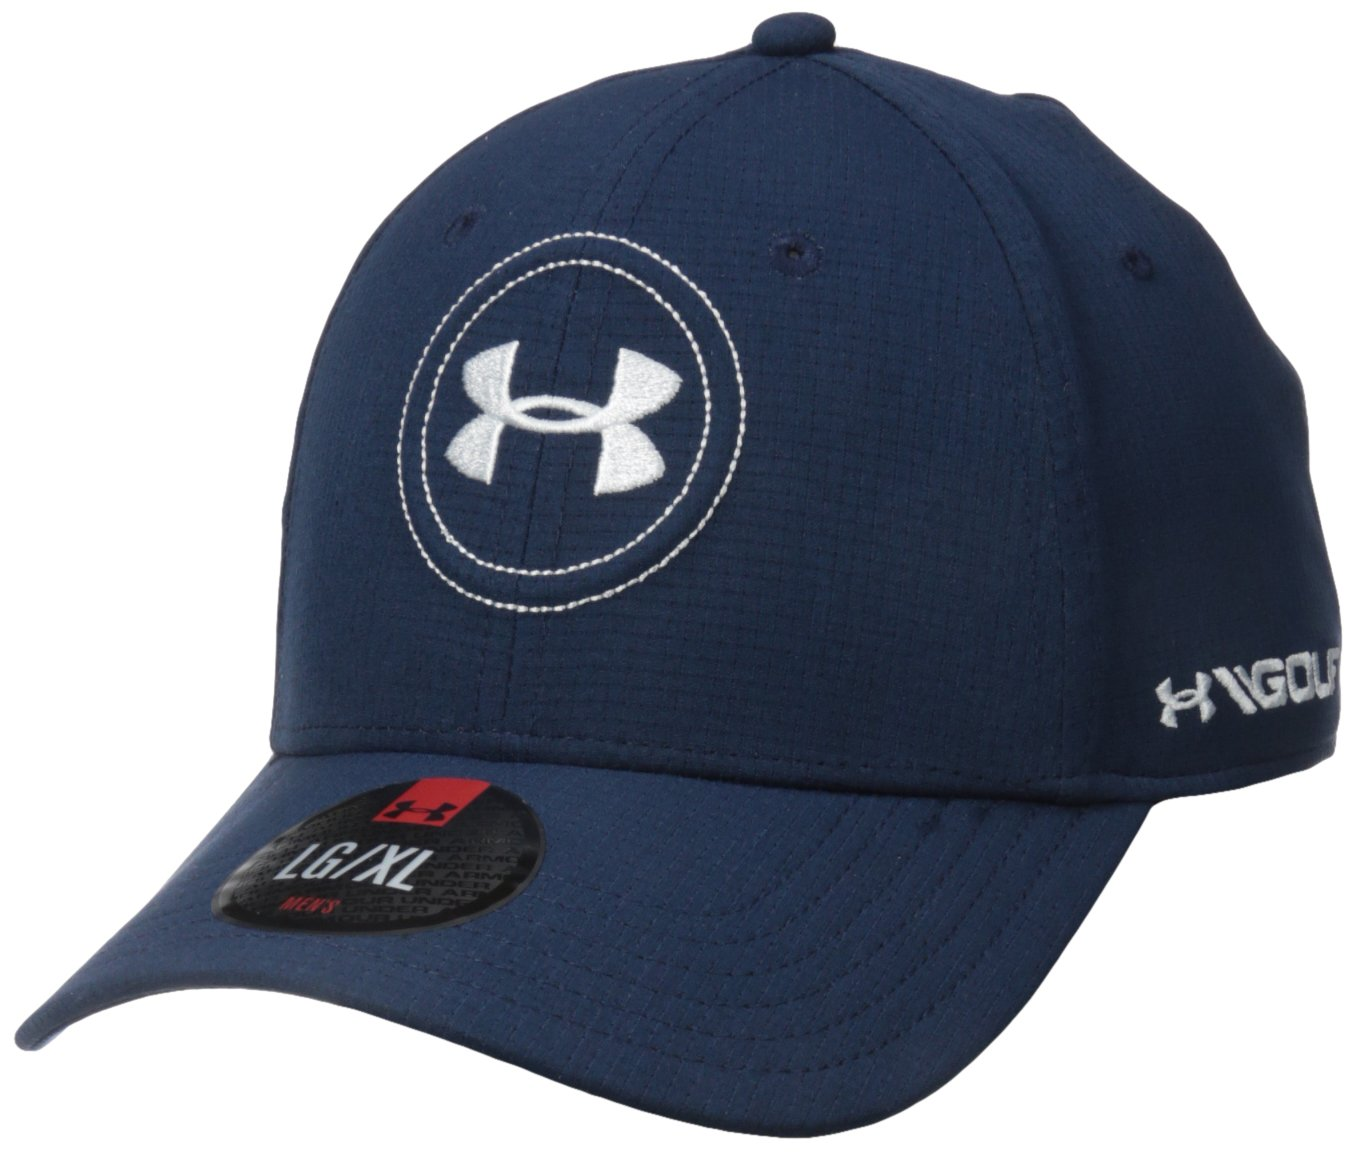 02c39072c91 Amazon.com  Under Armour Men s Jordan Spieth UA Tour Cap  Sports   Outdoors